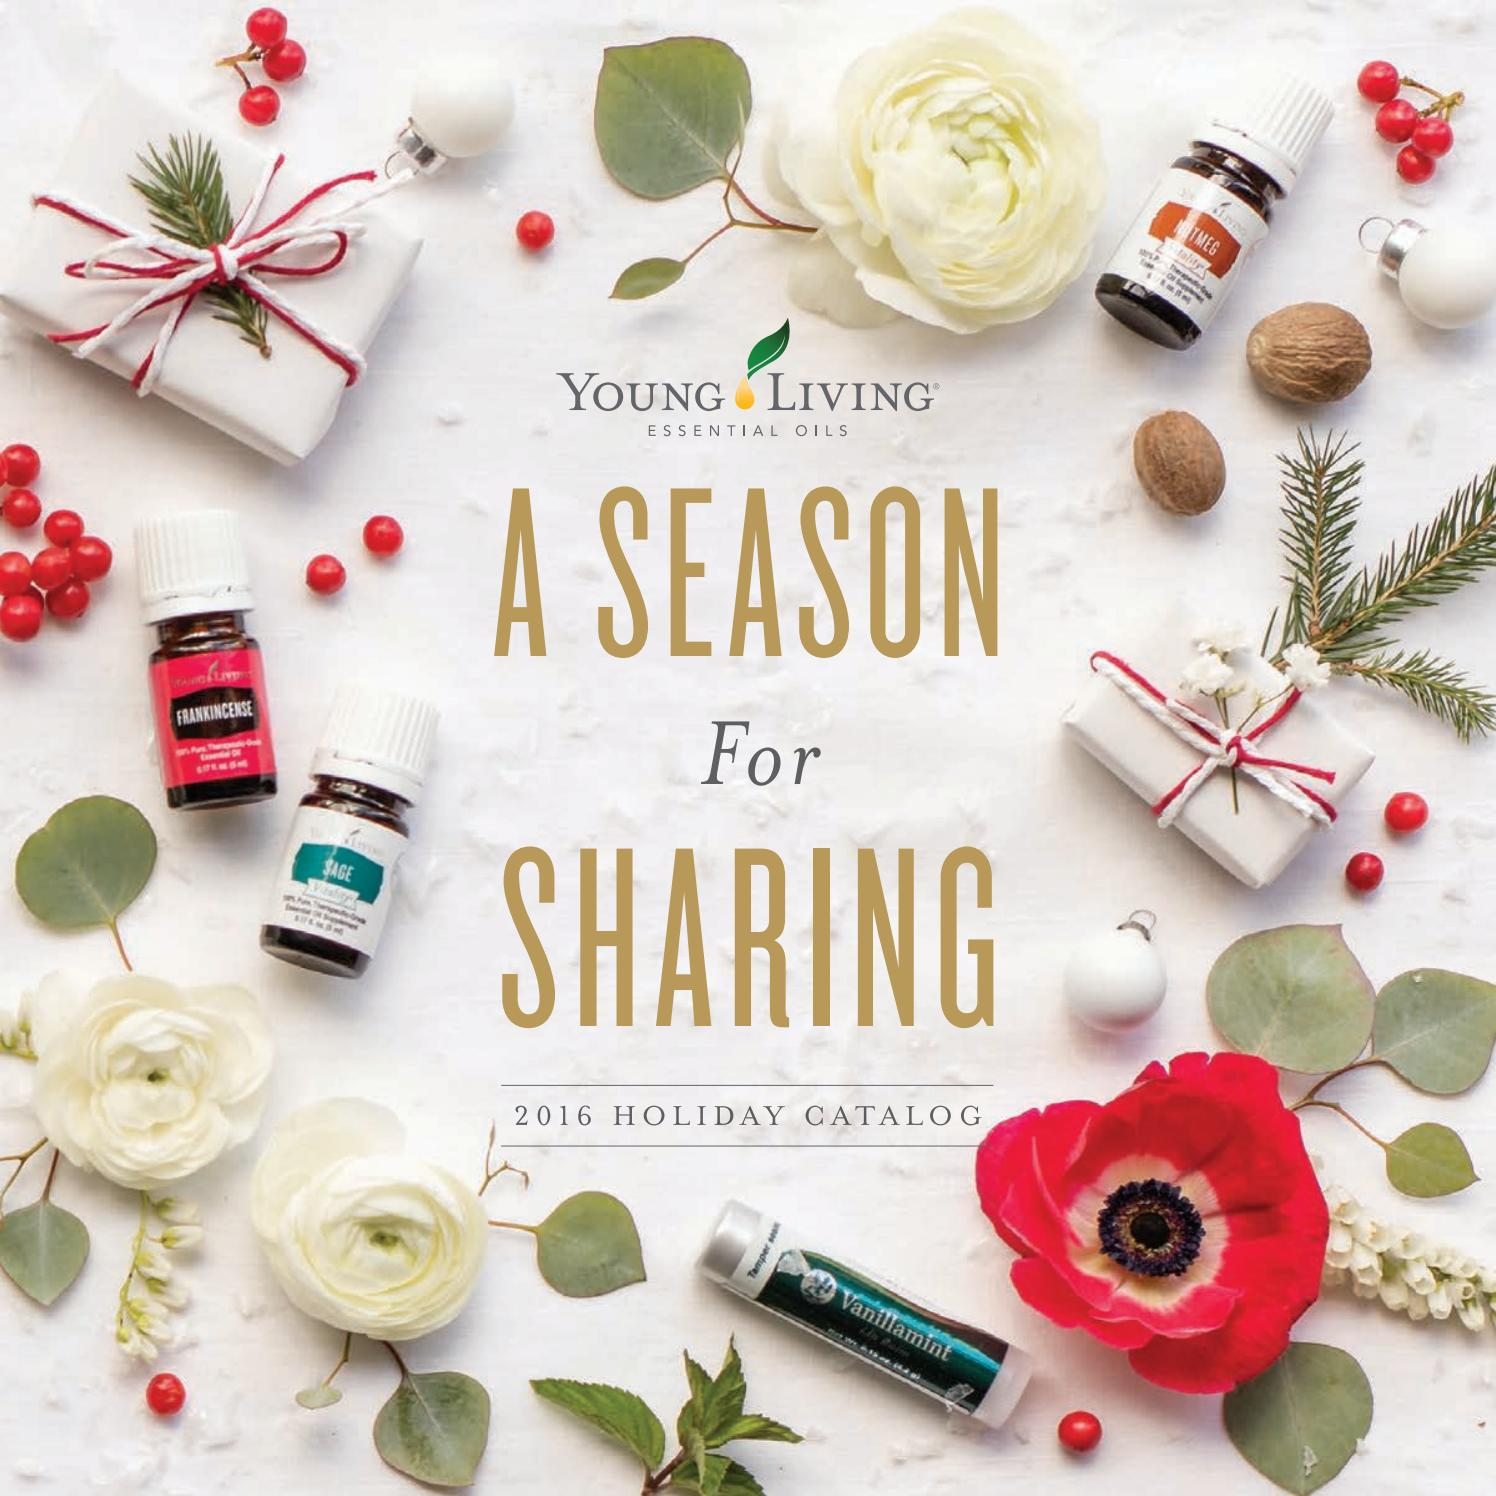 2016 Holiday Catalog By Young Living Essential Oils Issuu